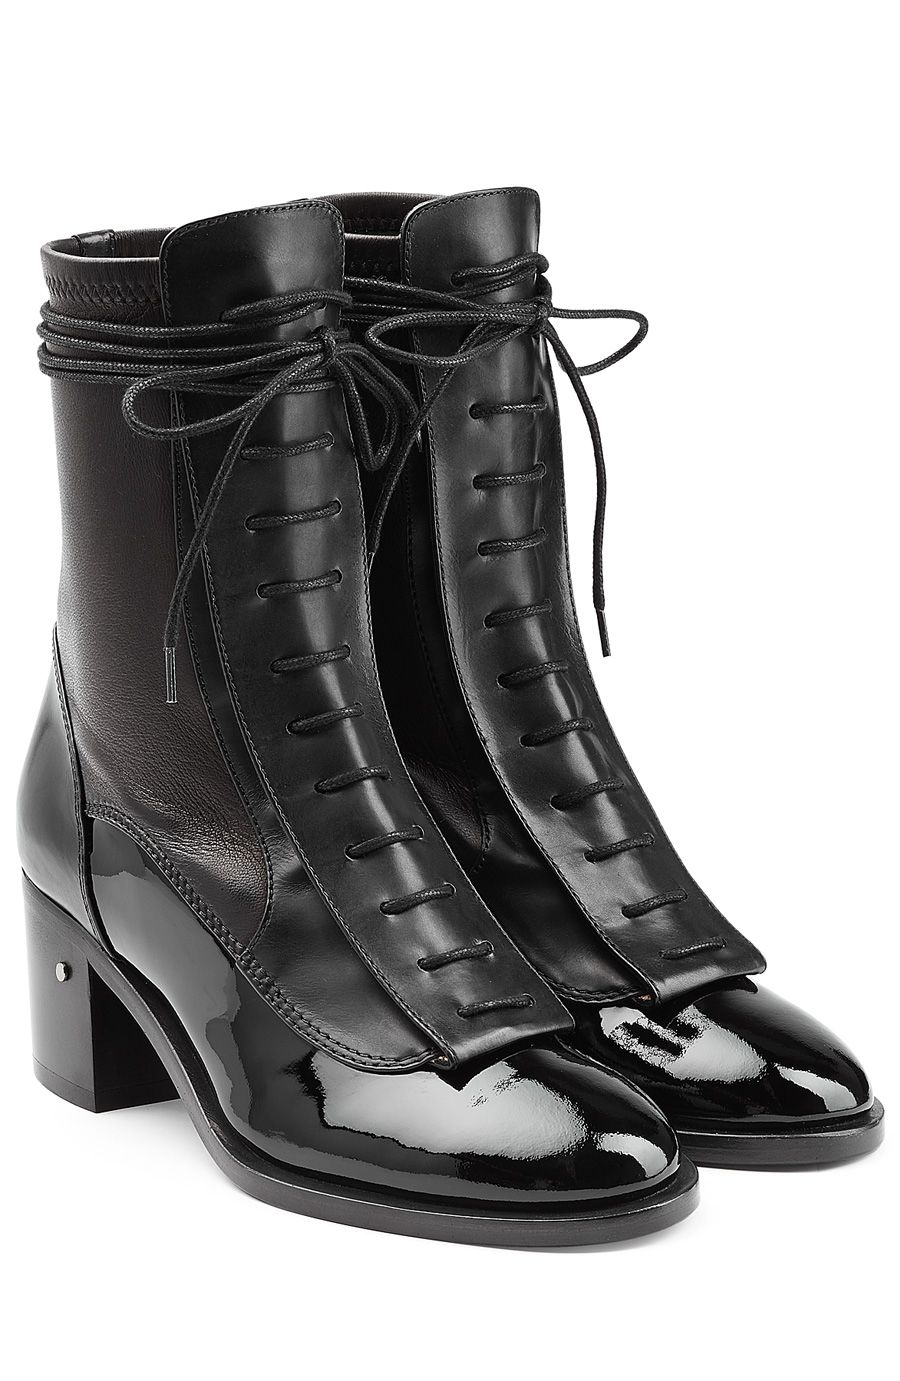 0Bottines en en detail cuir lacets Bottines cuir m0nvwN8